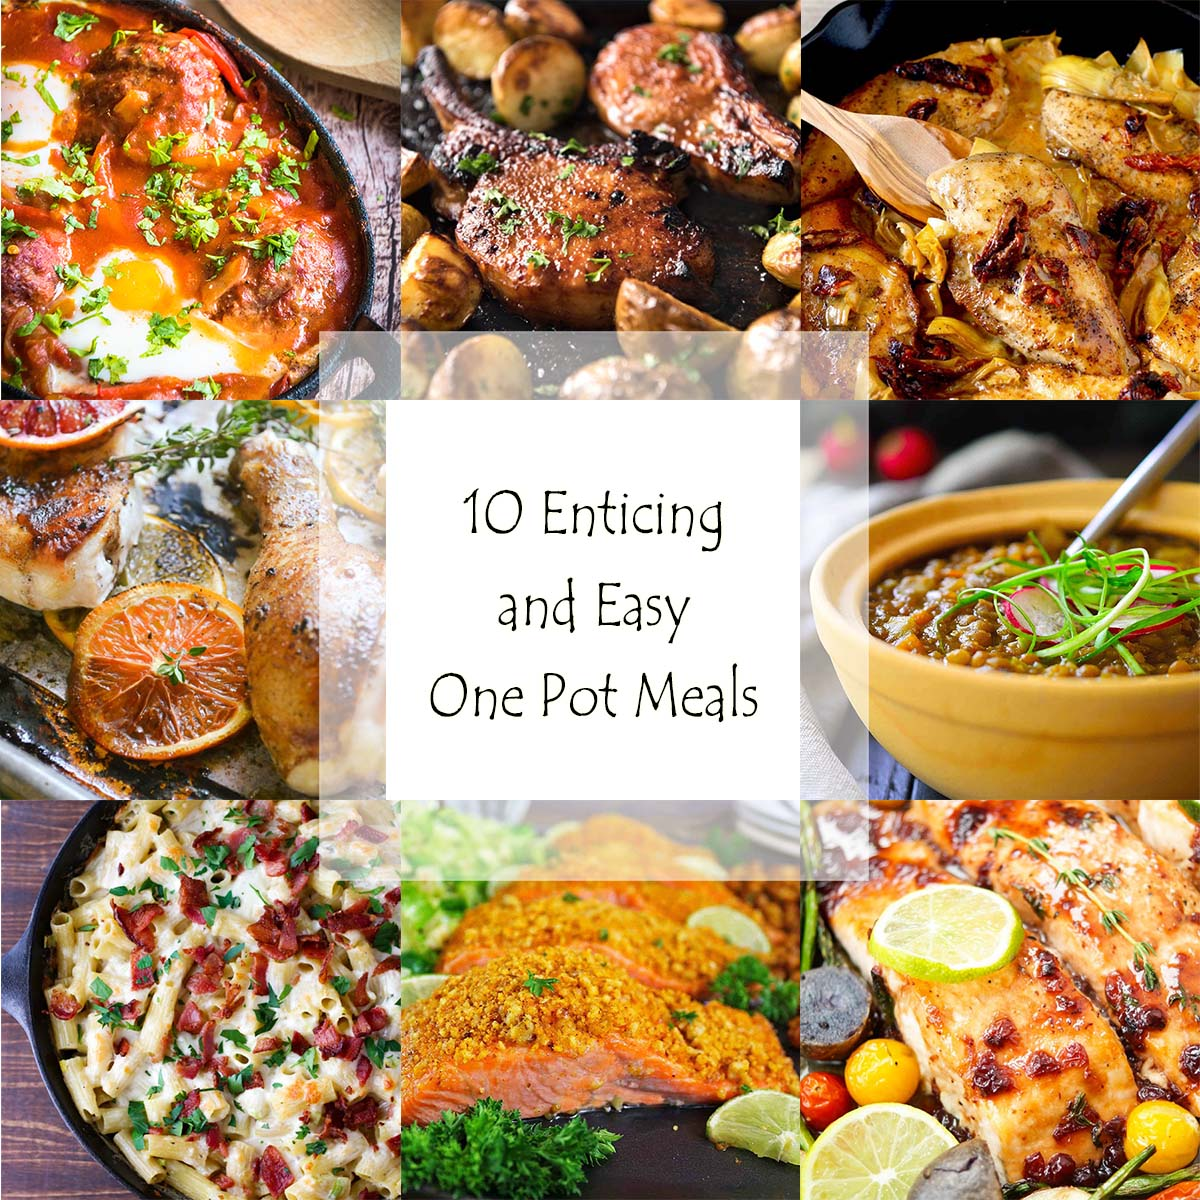 Simple Dinner Ideas One Pot Meals: 10 Enticing And Easy One Pot Meals